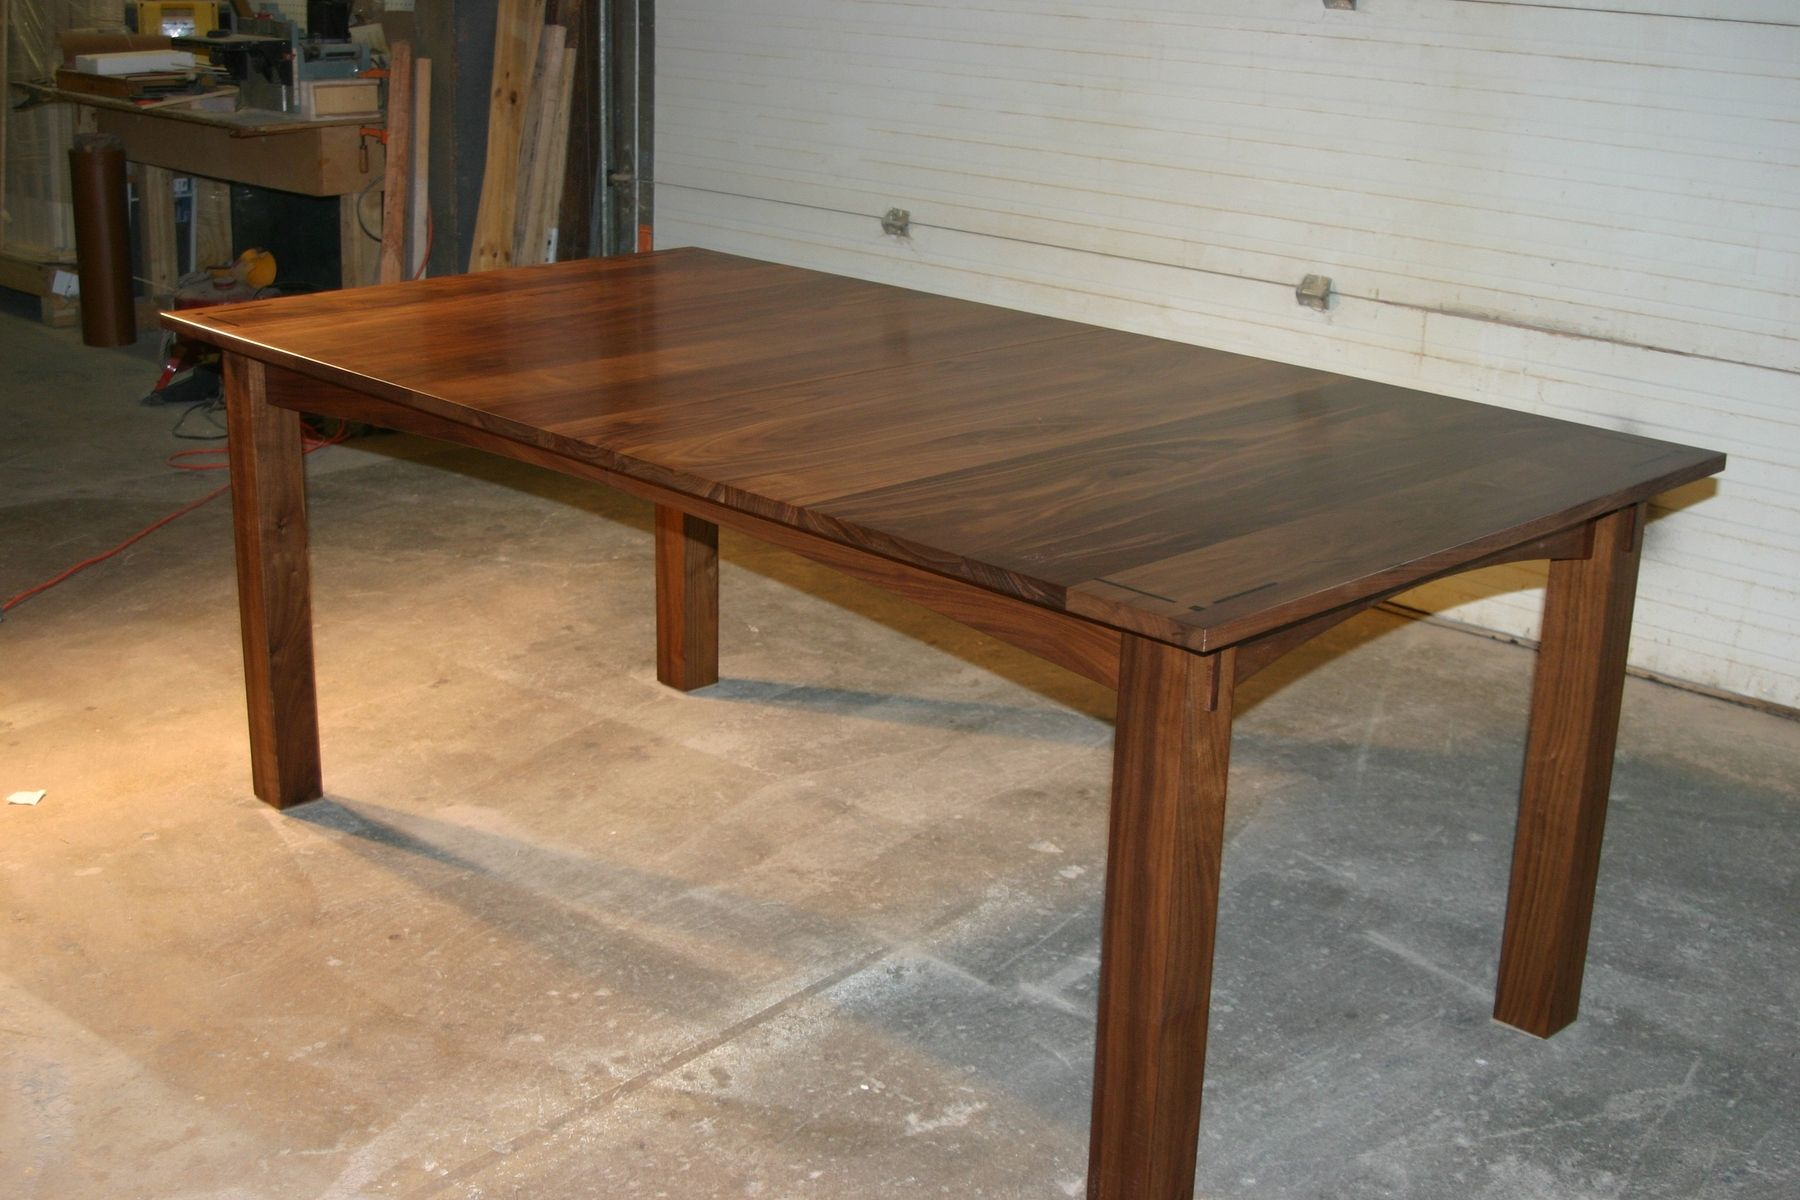 Handmade walnut dining table by canton studio for Dining room tables handmade